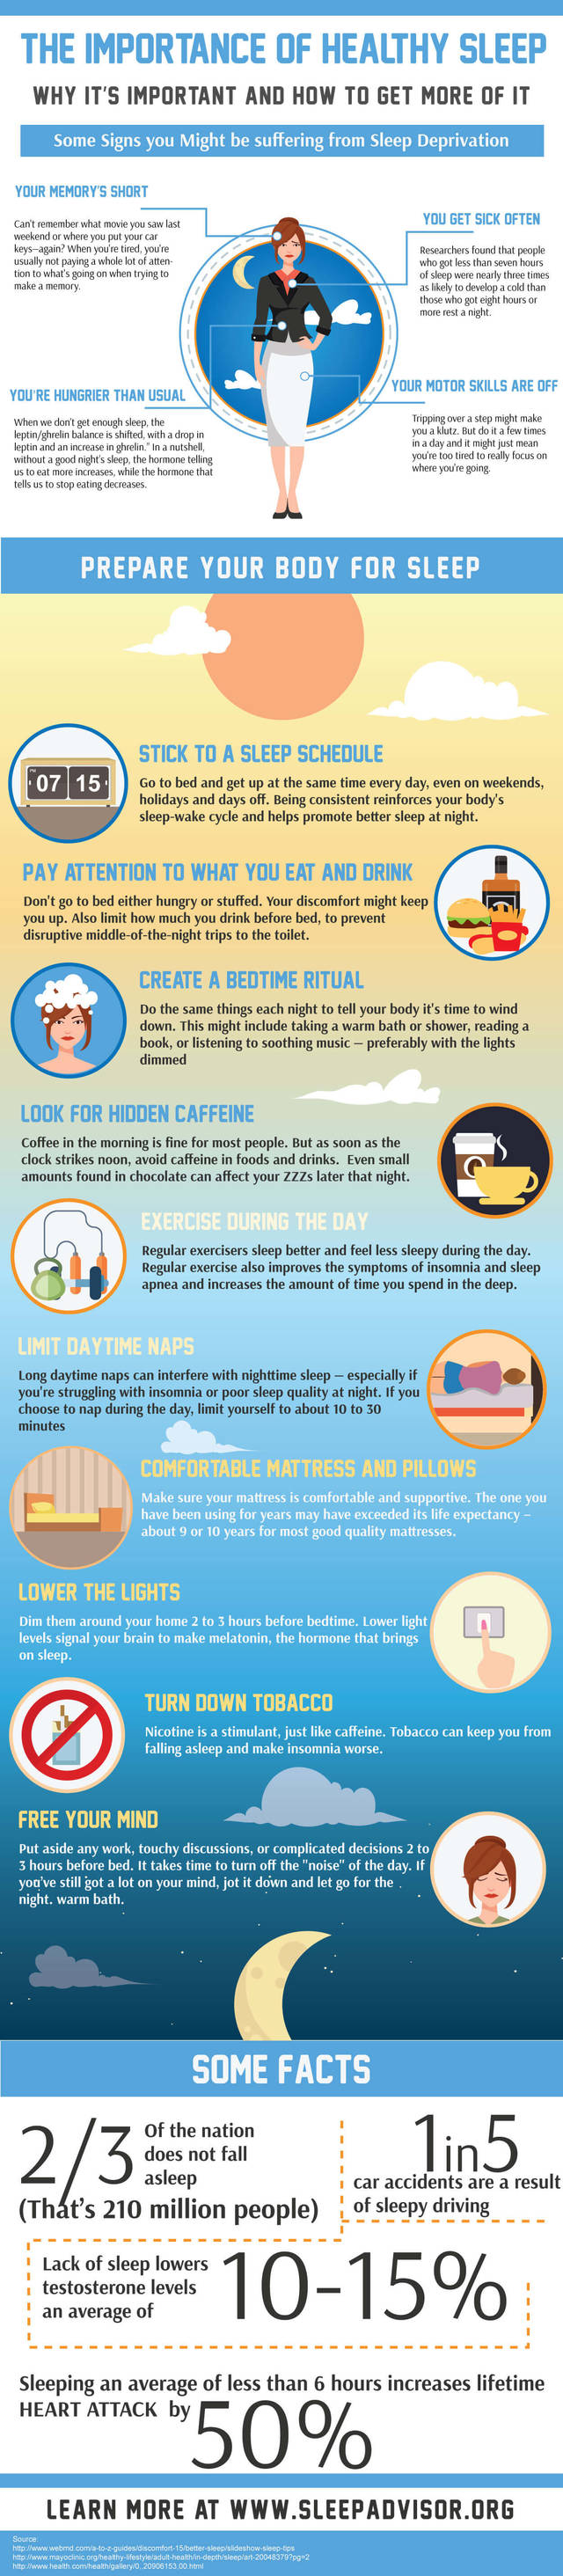 The importance of healthy sleep infographic